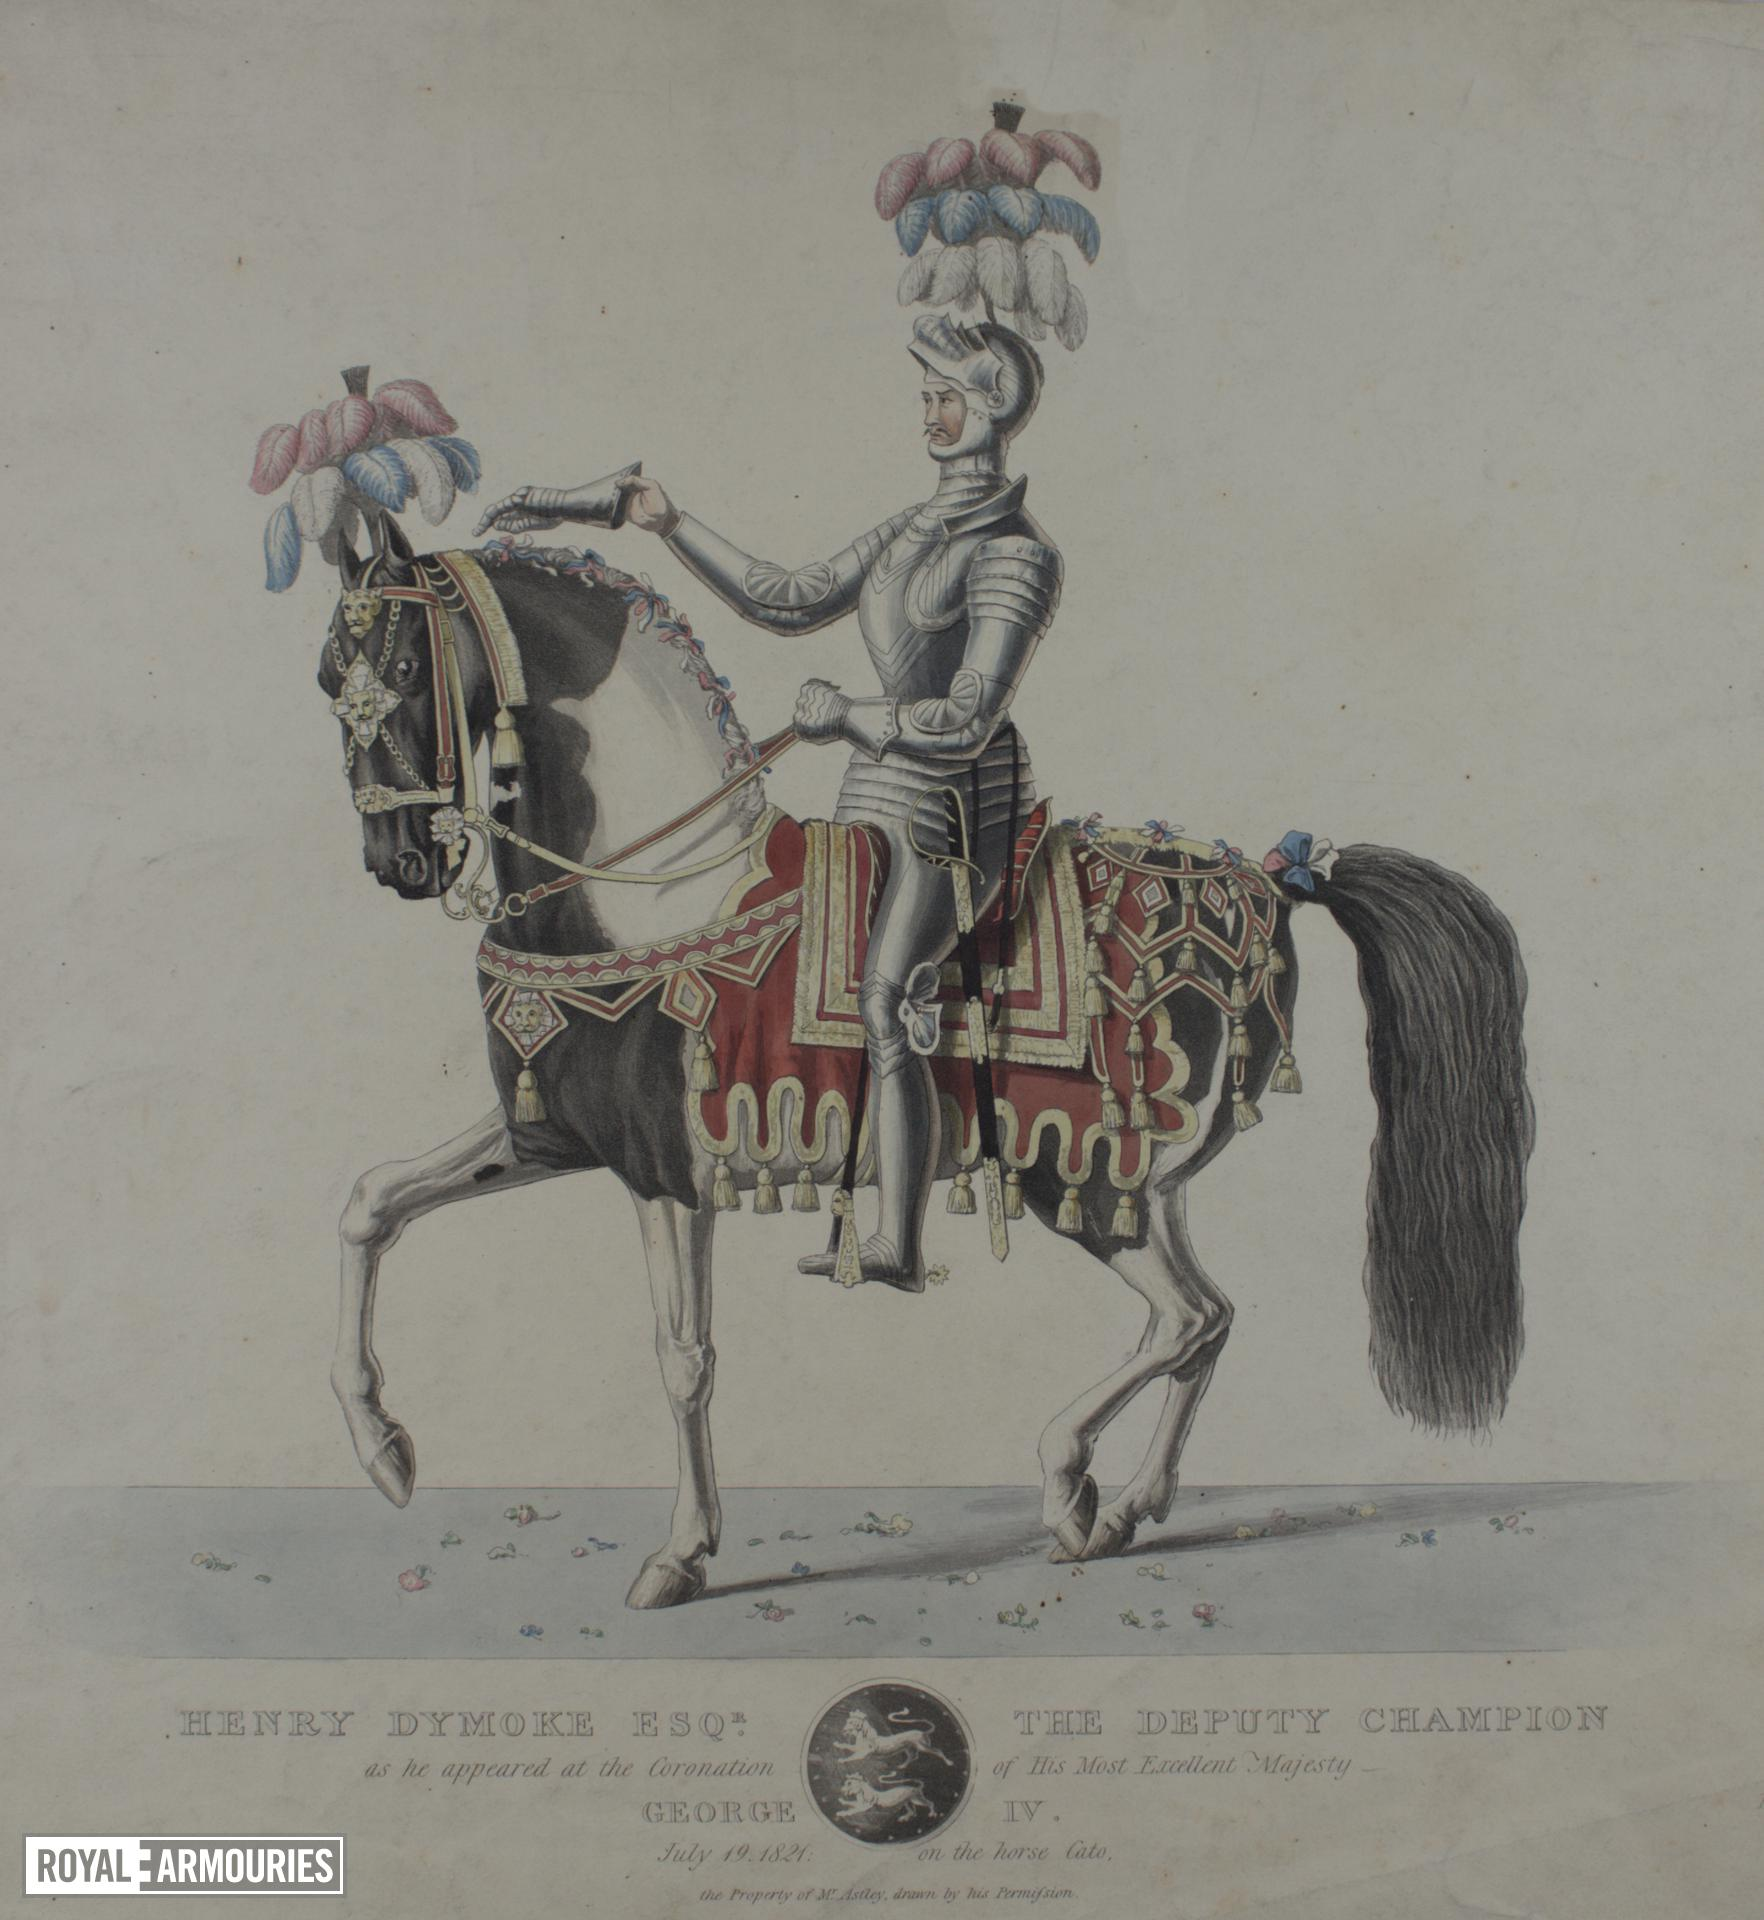 Print Coloured Engraving:  'Henry Dymoke Esqre. the Deputy Champion as he appeared at the Coronation of his most Excellent Majesty George IV, July 19, 1821...